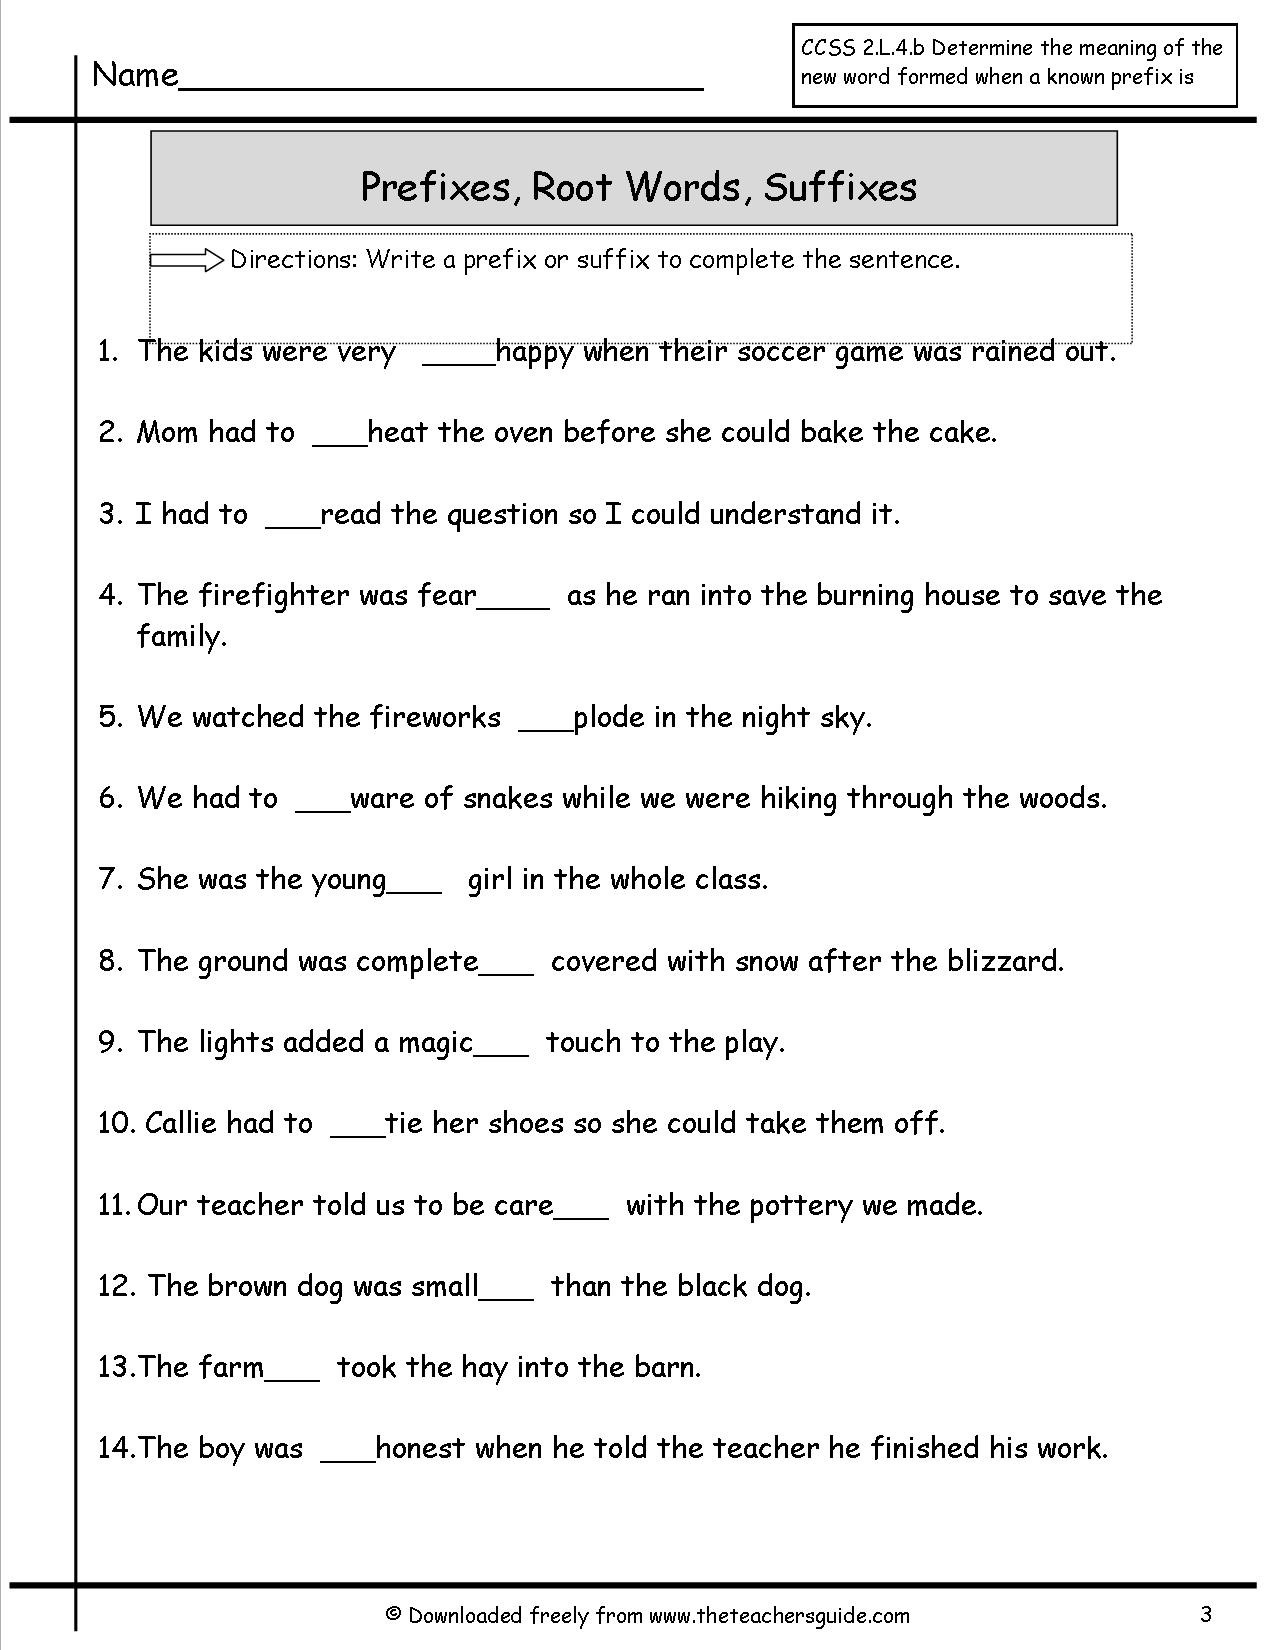 Prefixes and Suffixes Worksheet Awesome Prefixes and Suffixes Worksheet